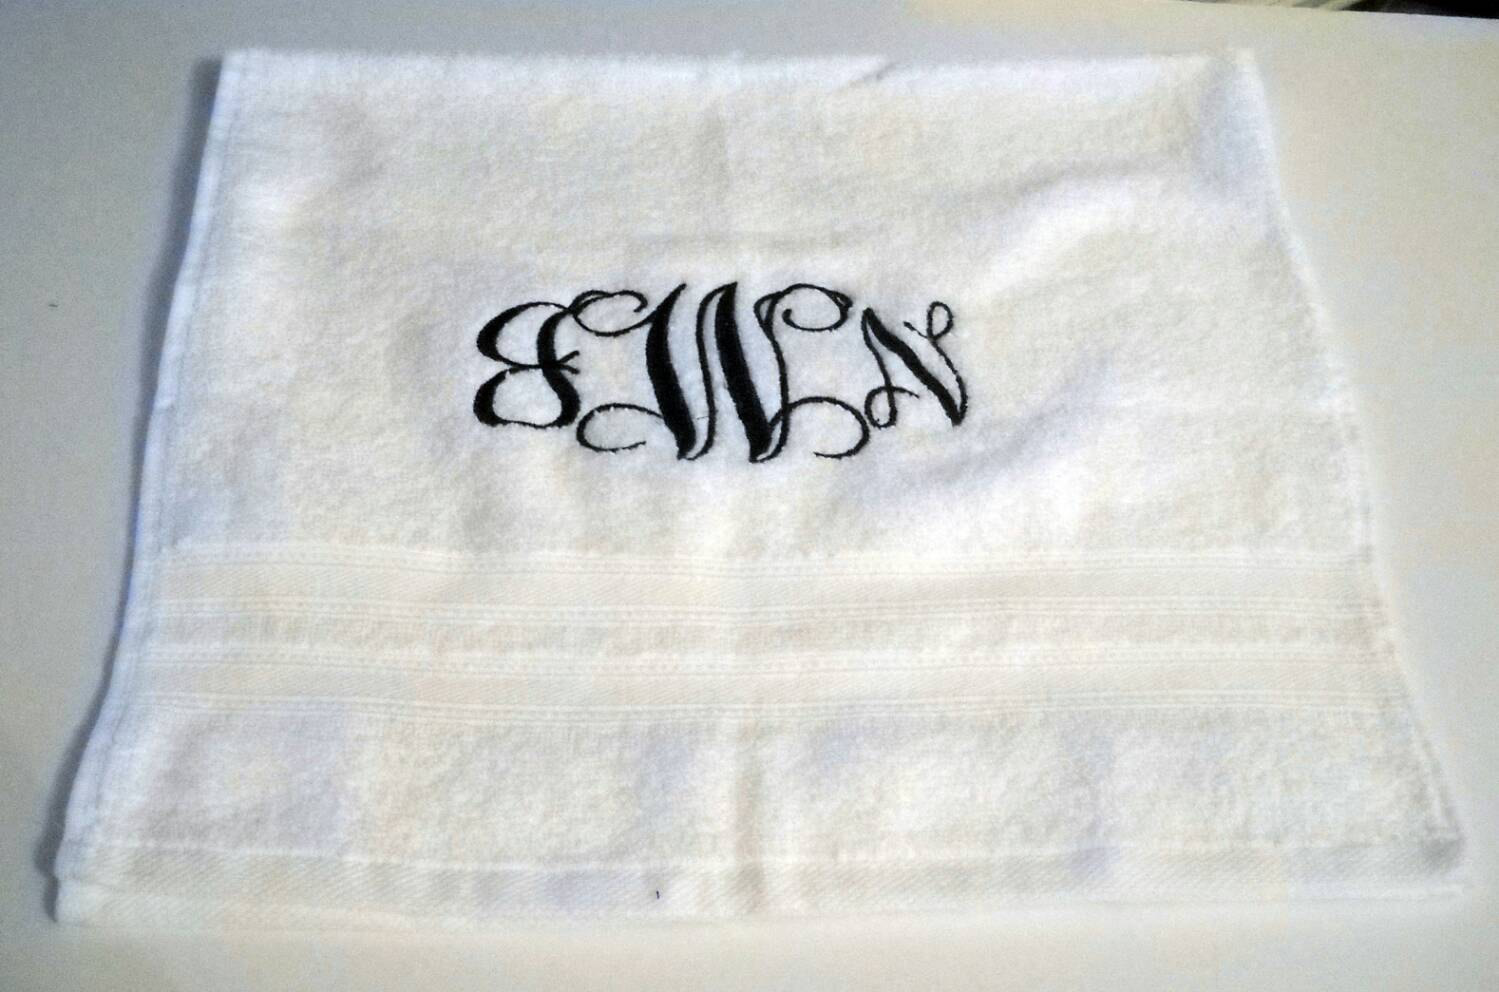 Elegant monogrammed hand towels with Decorative logo pattern towel for bathing Ideas